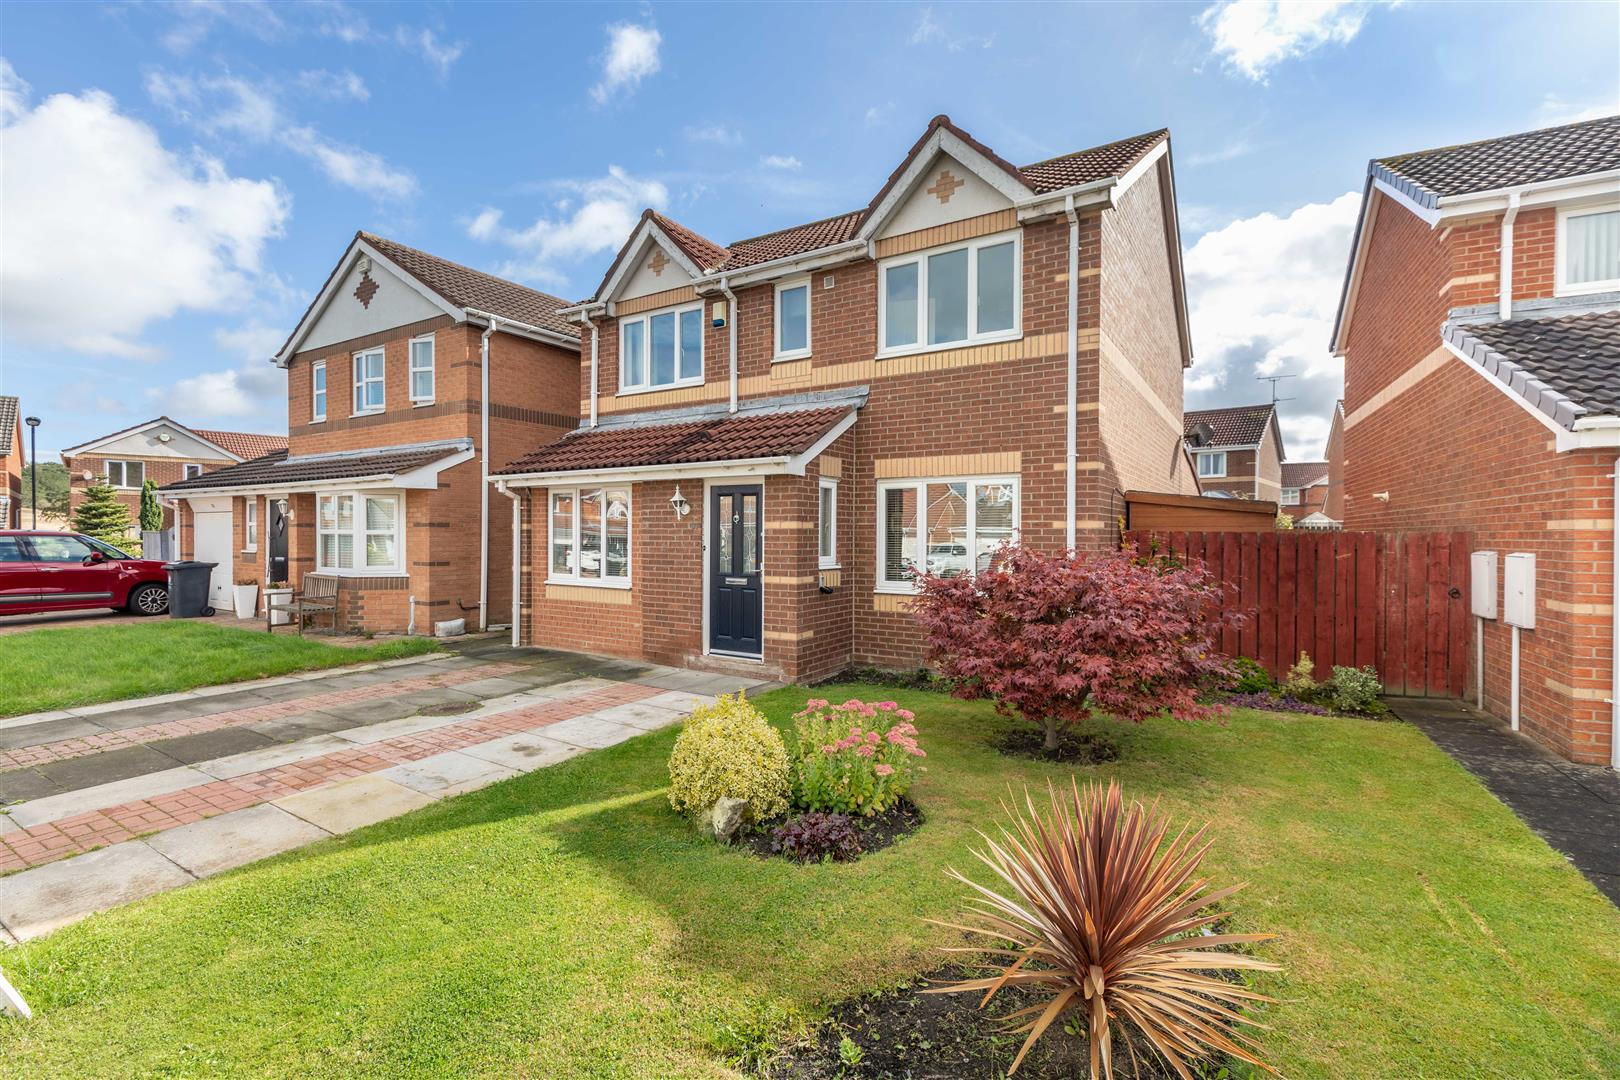 5 bed detached house for sale in Newcastle Upon Tyne, NE12 9DG - Property Image 1